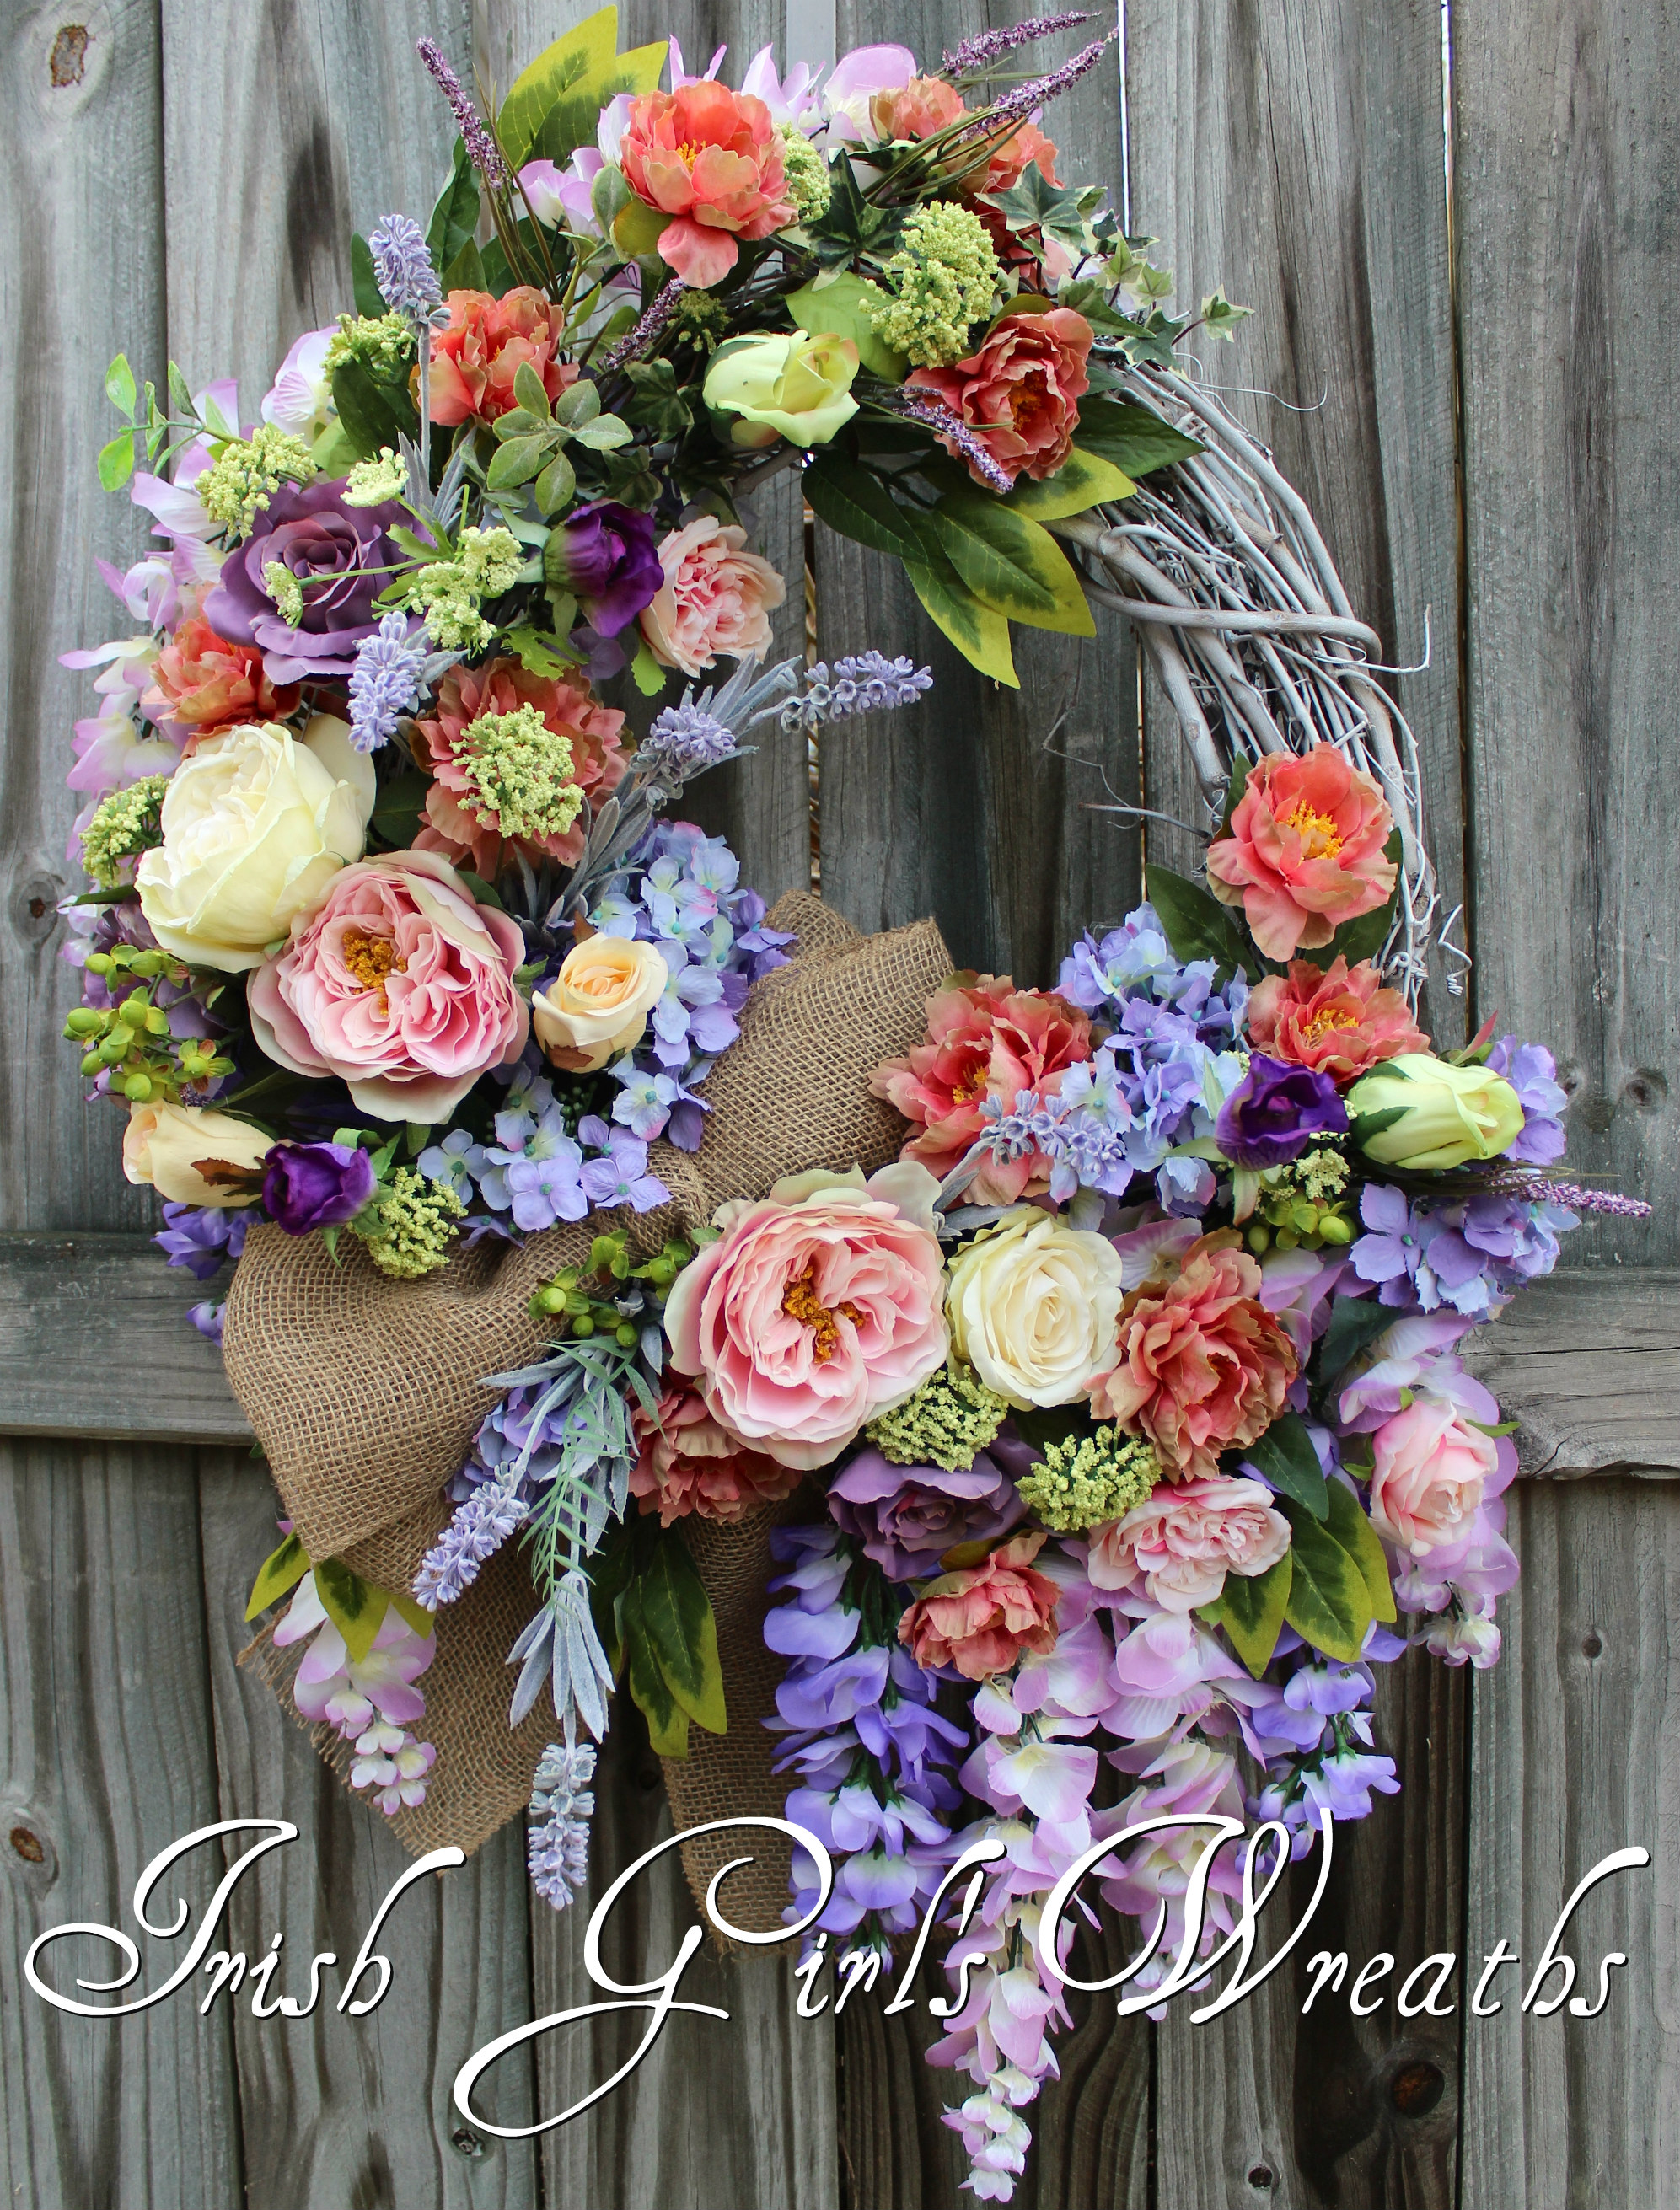 XL French Country Splendor Wreath, Spring Summer French Floral: lavender, Wisteria, Roses, Peony